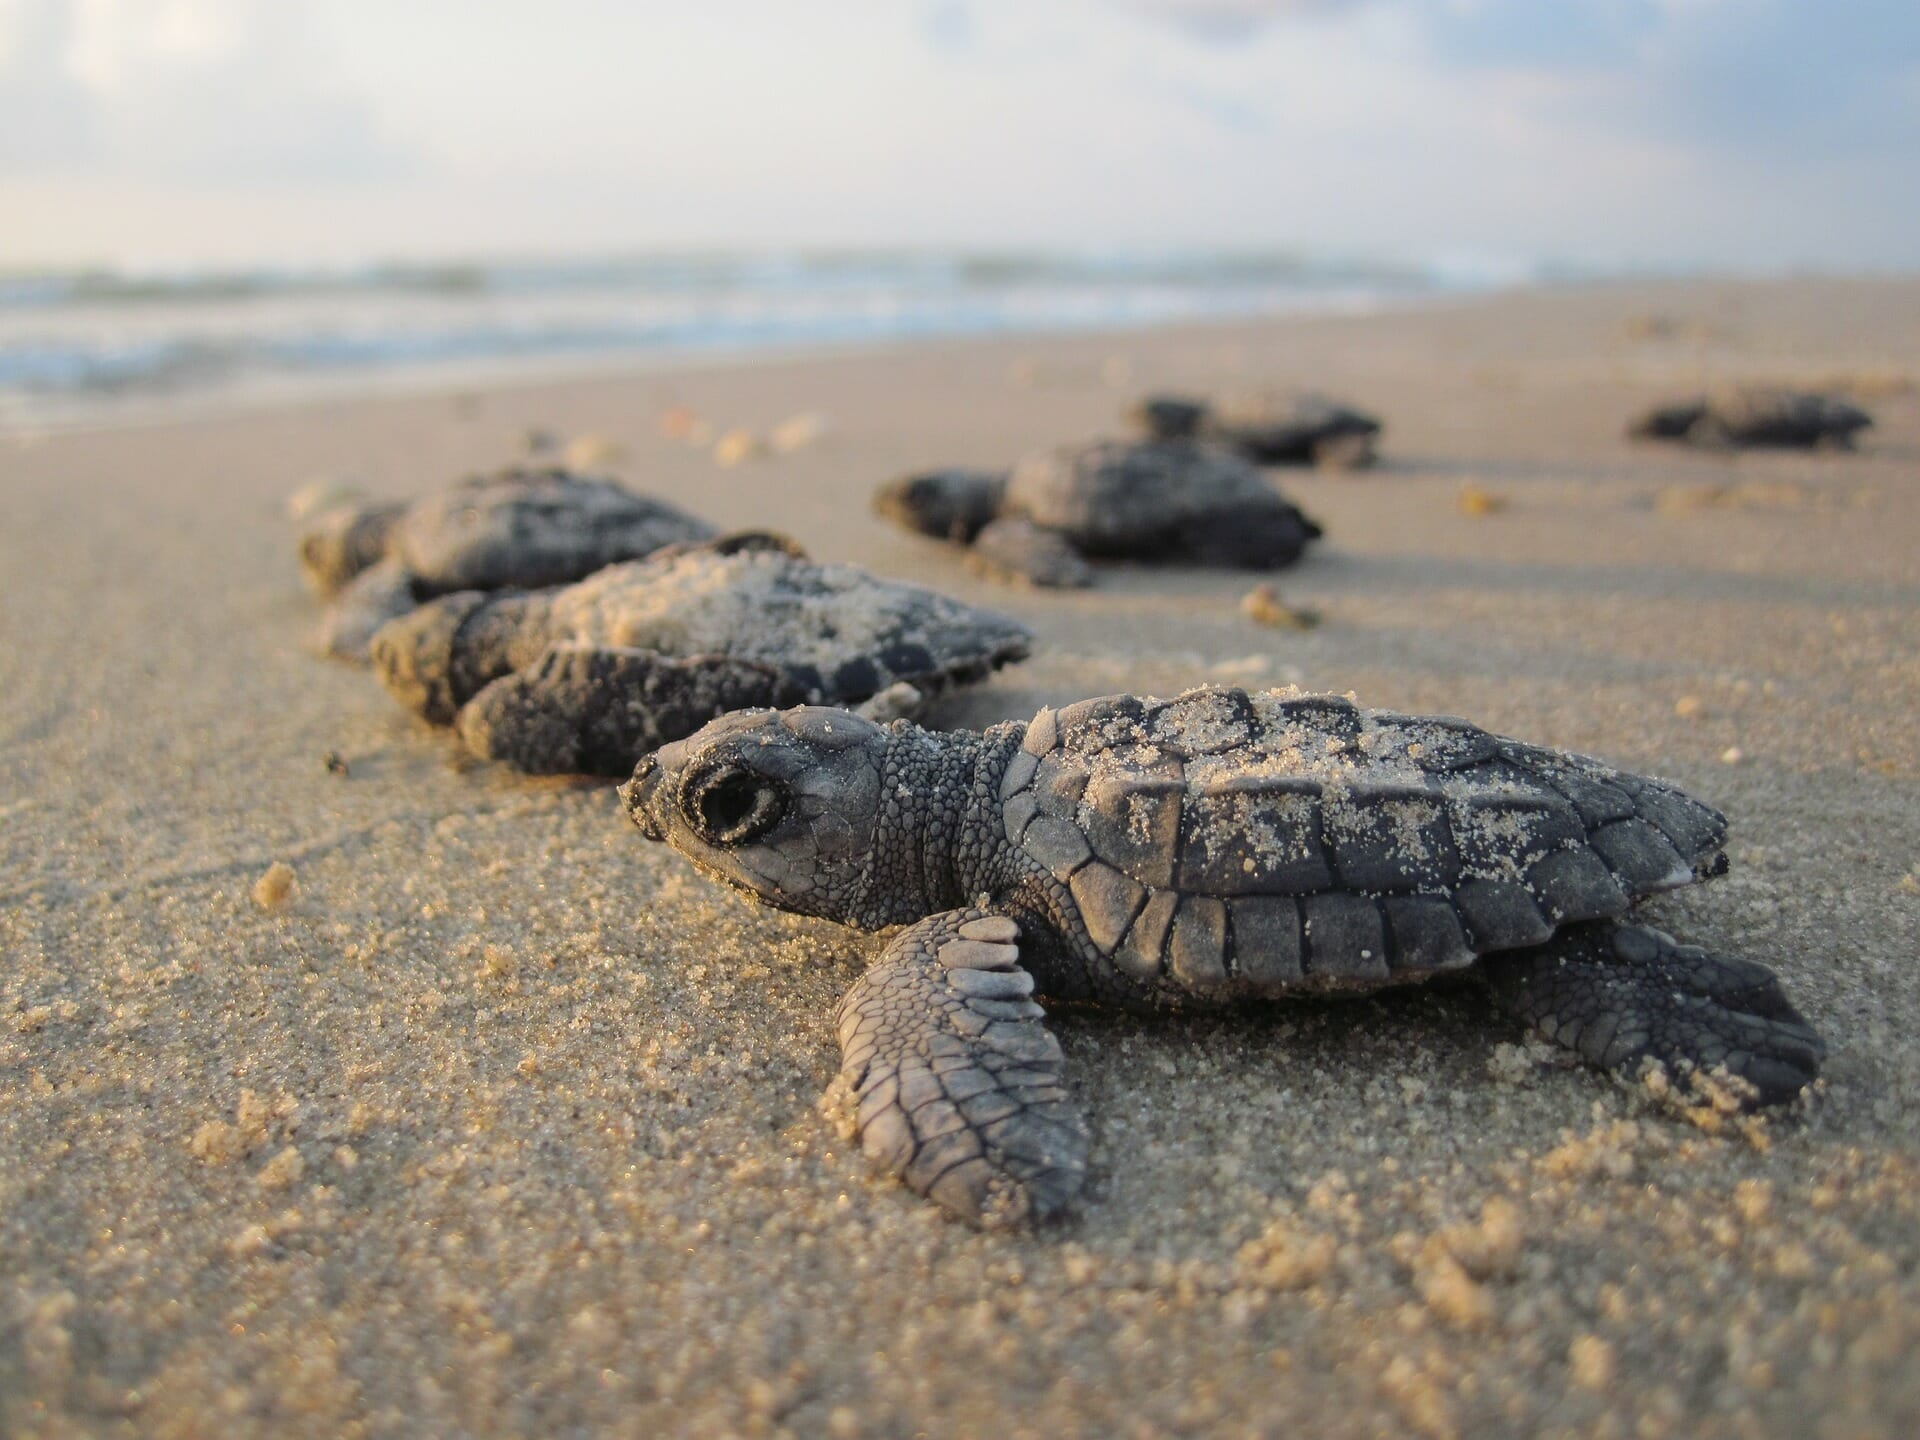 The Baby Sea Turtles of Acapulco